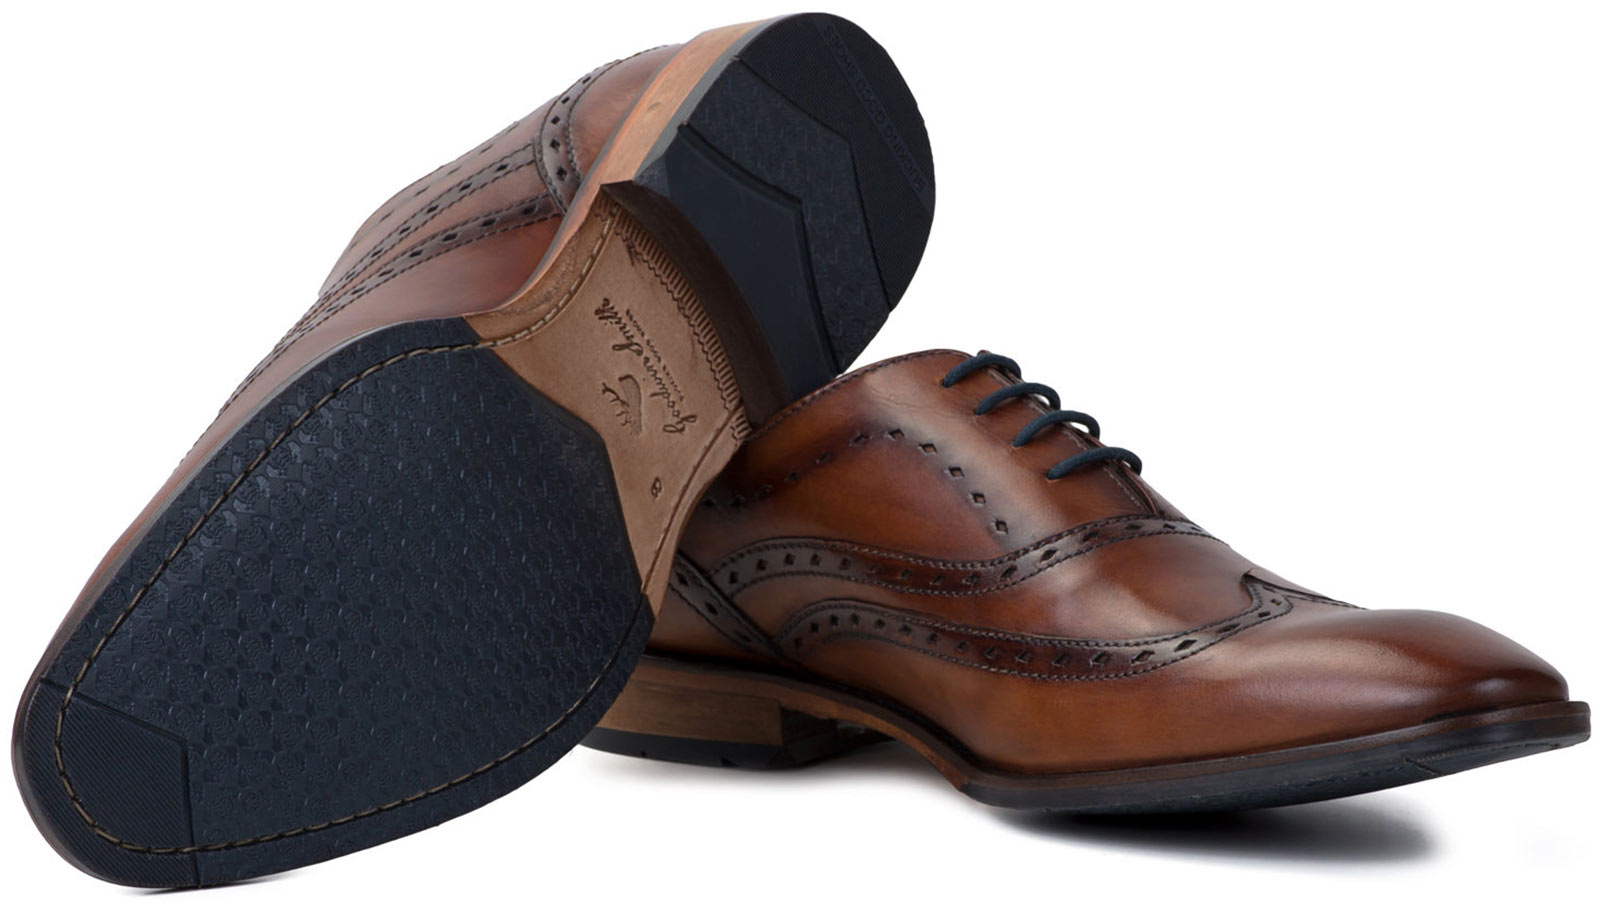 New Goodwin Smith Brogue Bowland  Uomo Oxford Brogue Smith Schuhes ALL SIZES AND COLOURS 0eb9c6